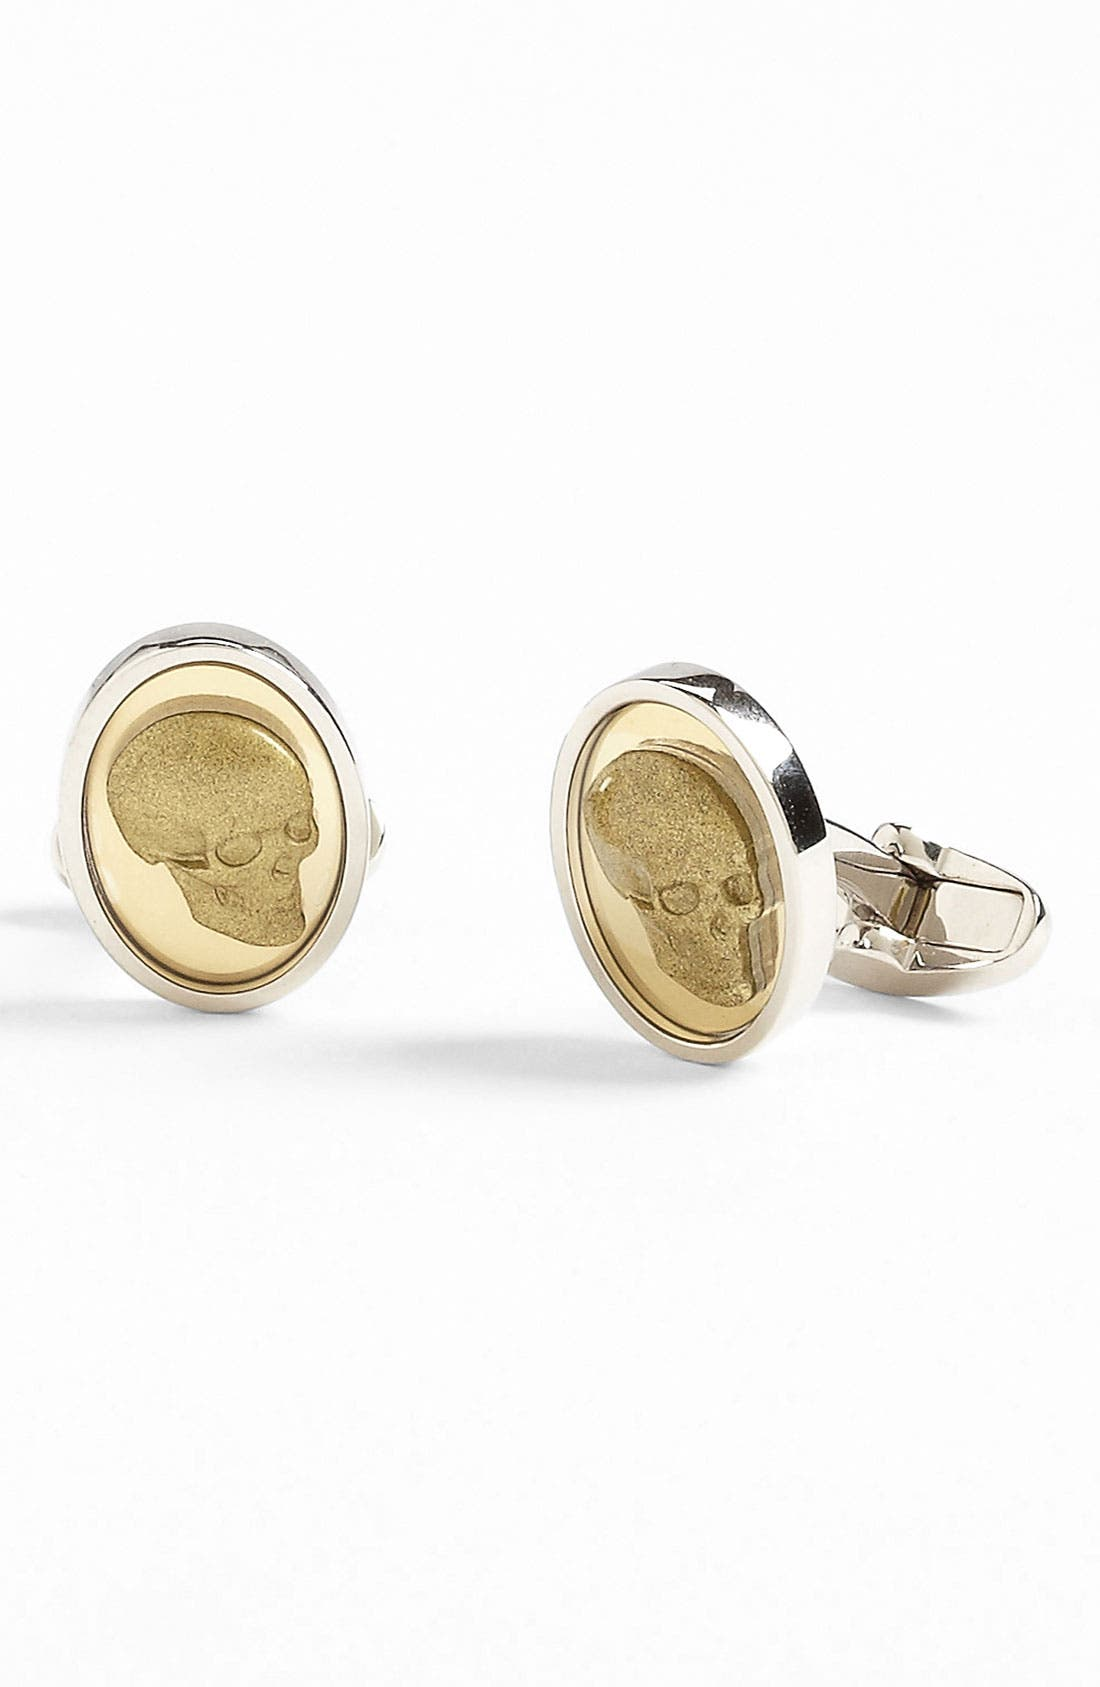 Main Image - Paul Smith Accessories 'Cameo Skull' Cuff Links